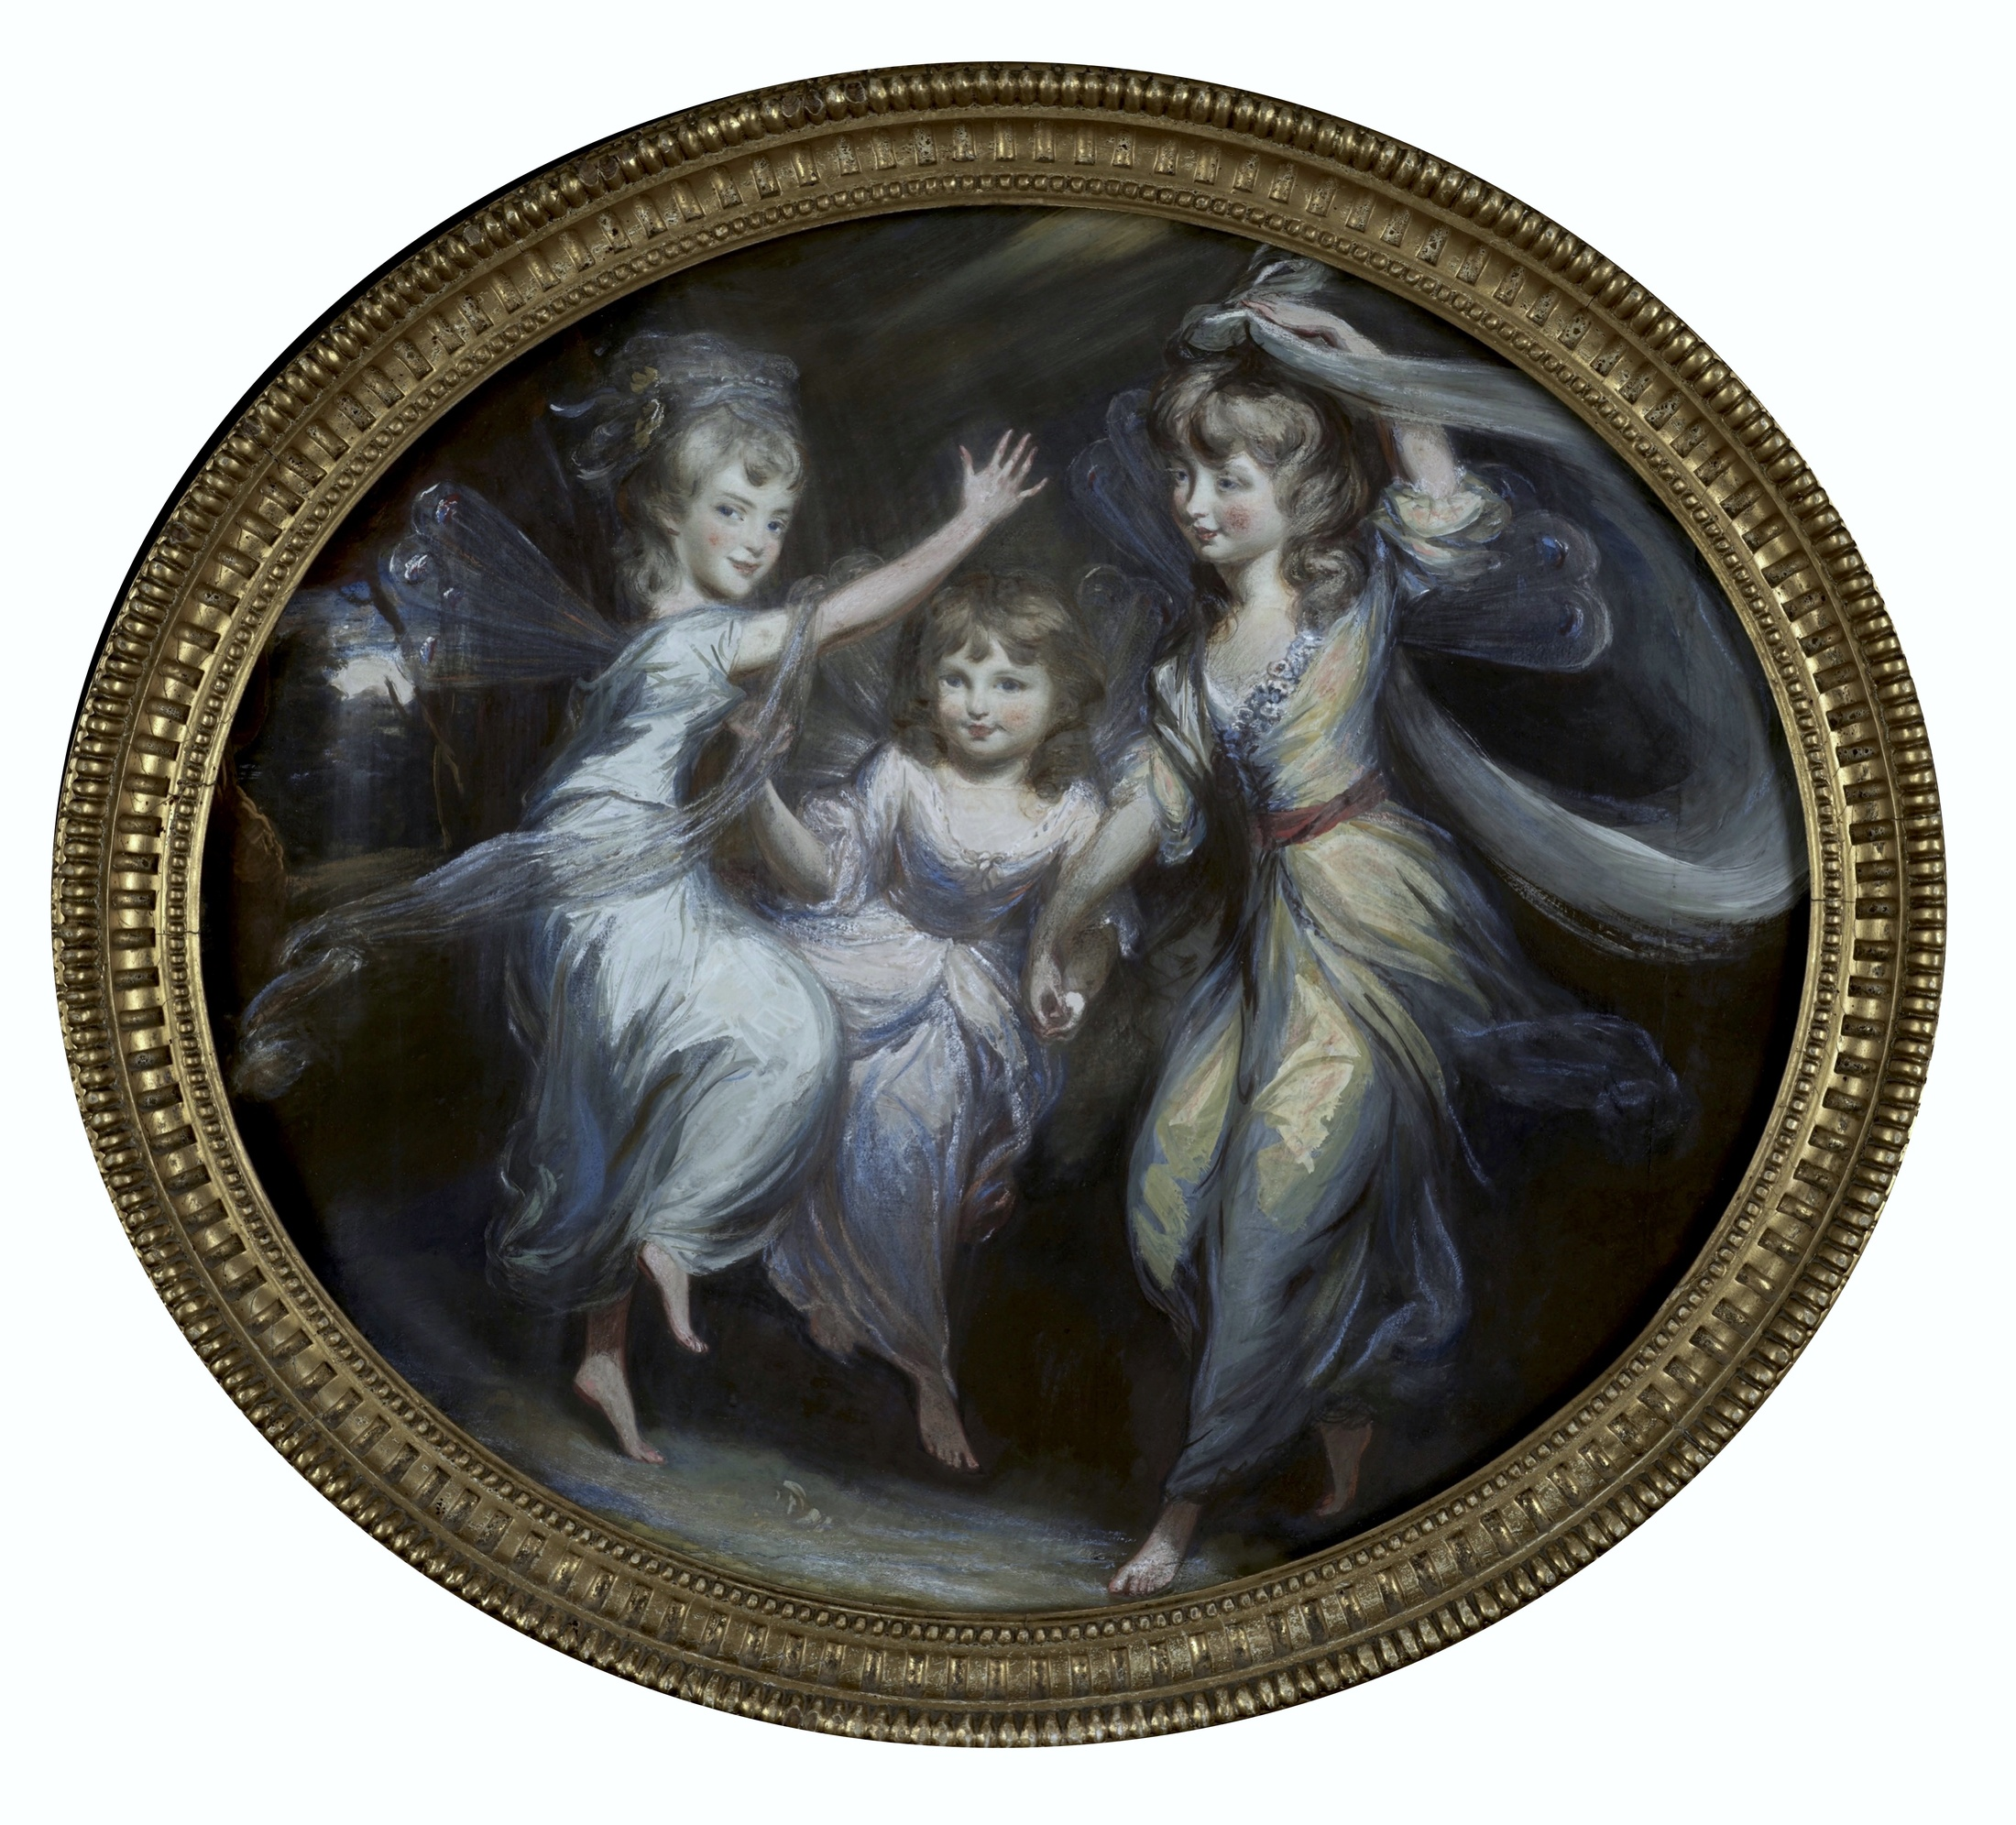 The Ladies Susan, Elizabeth and Mary Fane, Daughters of John, 9th Earl of Westmorland